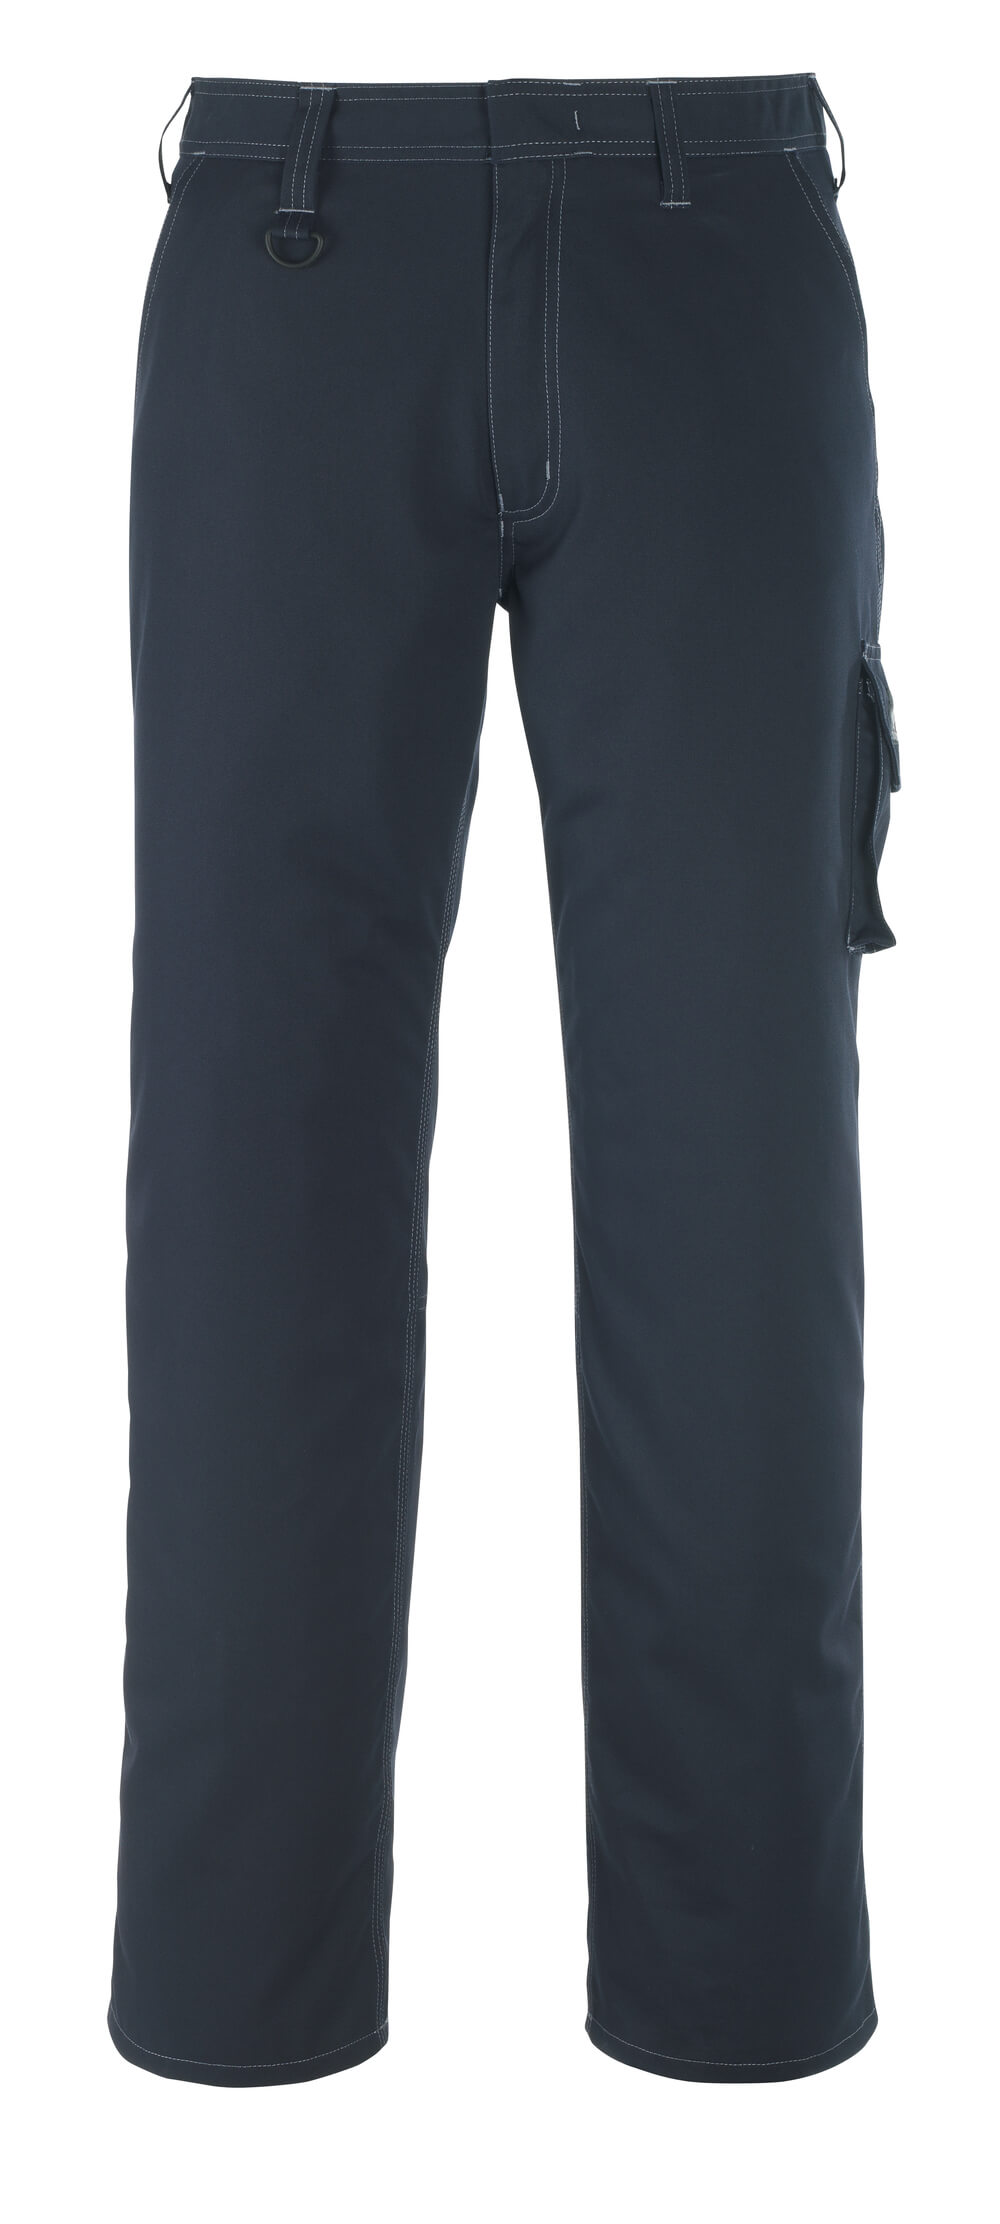 13579-442-010 Pants with thigh pockets - dark navy